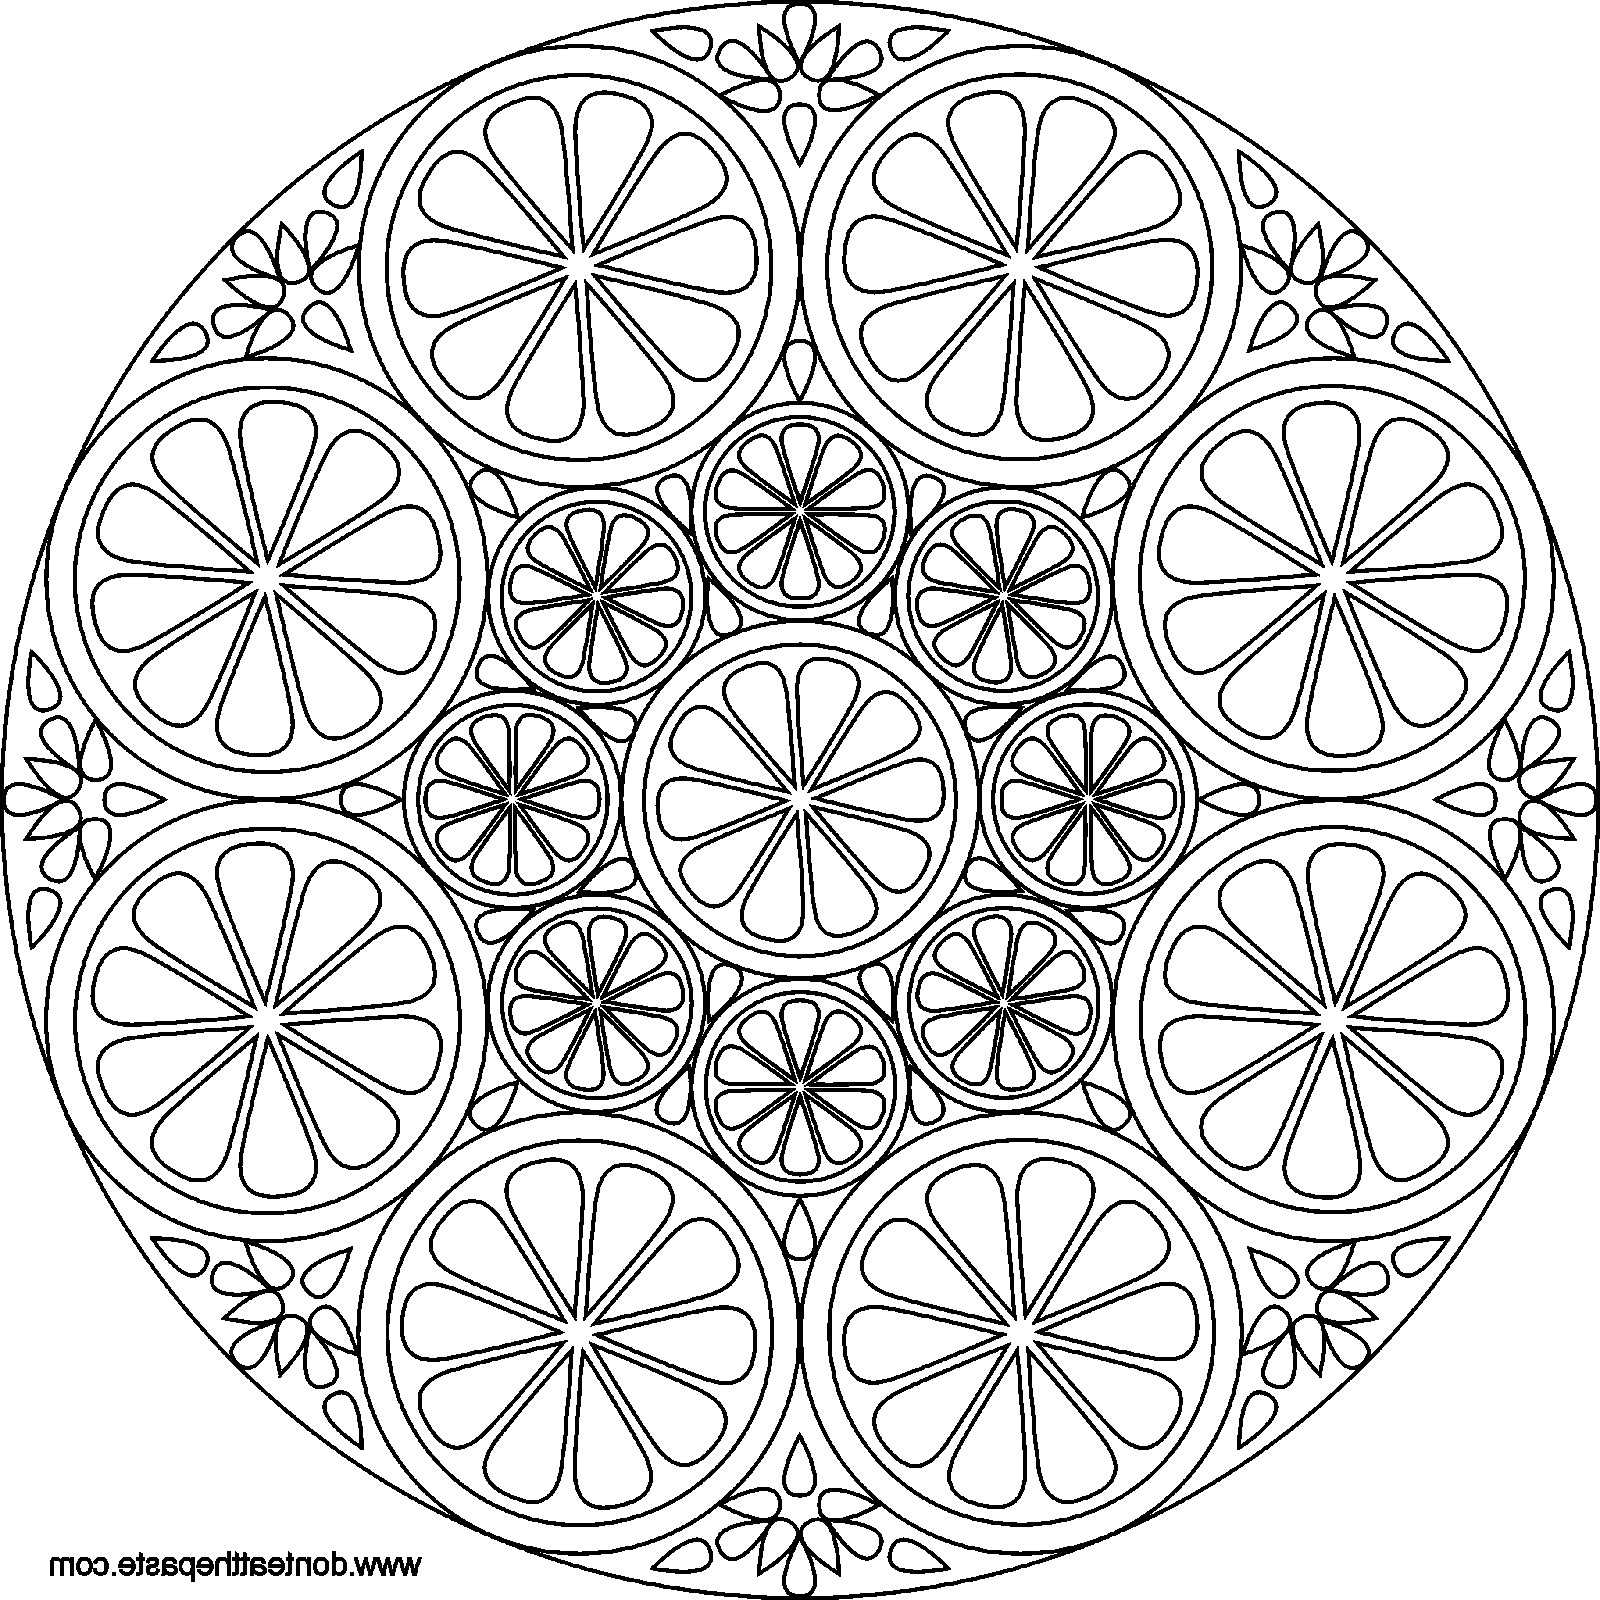 1600x1600 Magnificent Expert Level Mandala Coloring Pages With Simple